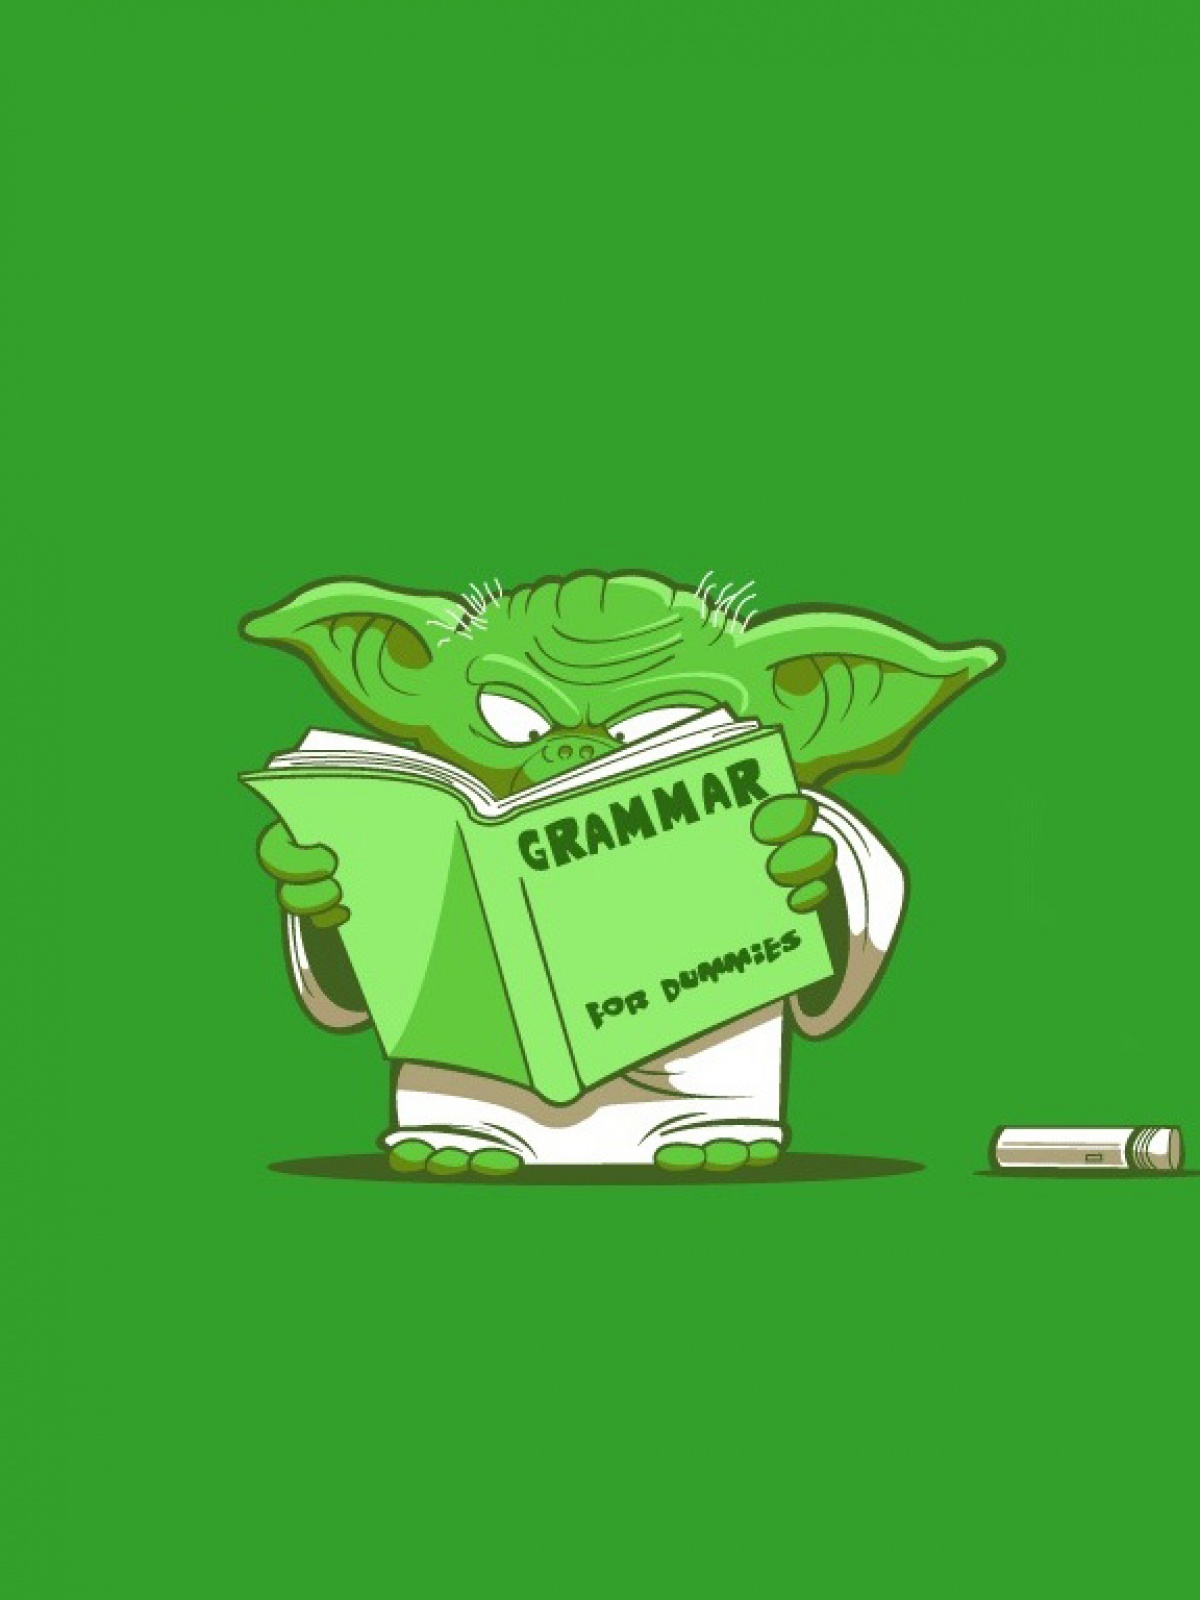 Wallpaper Android Yoda Baca Buku Warna Hijau